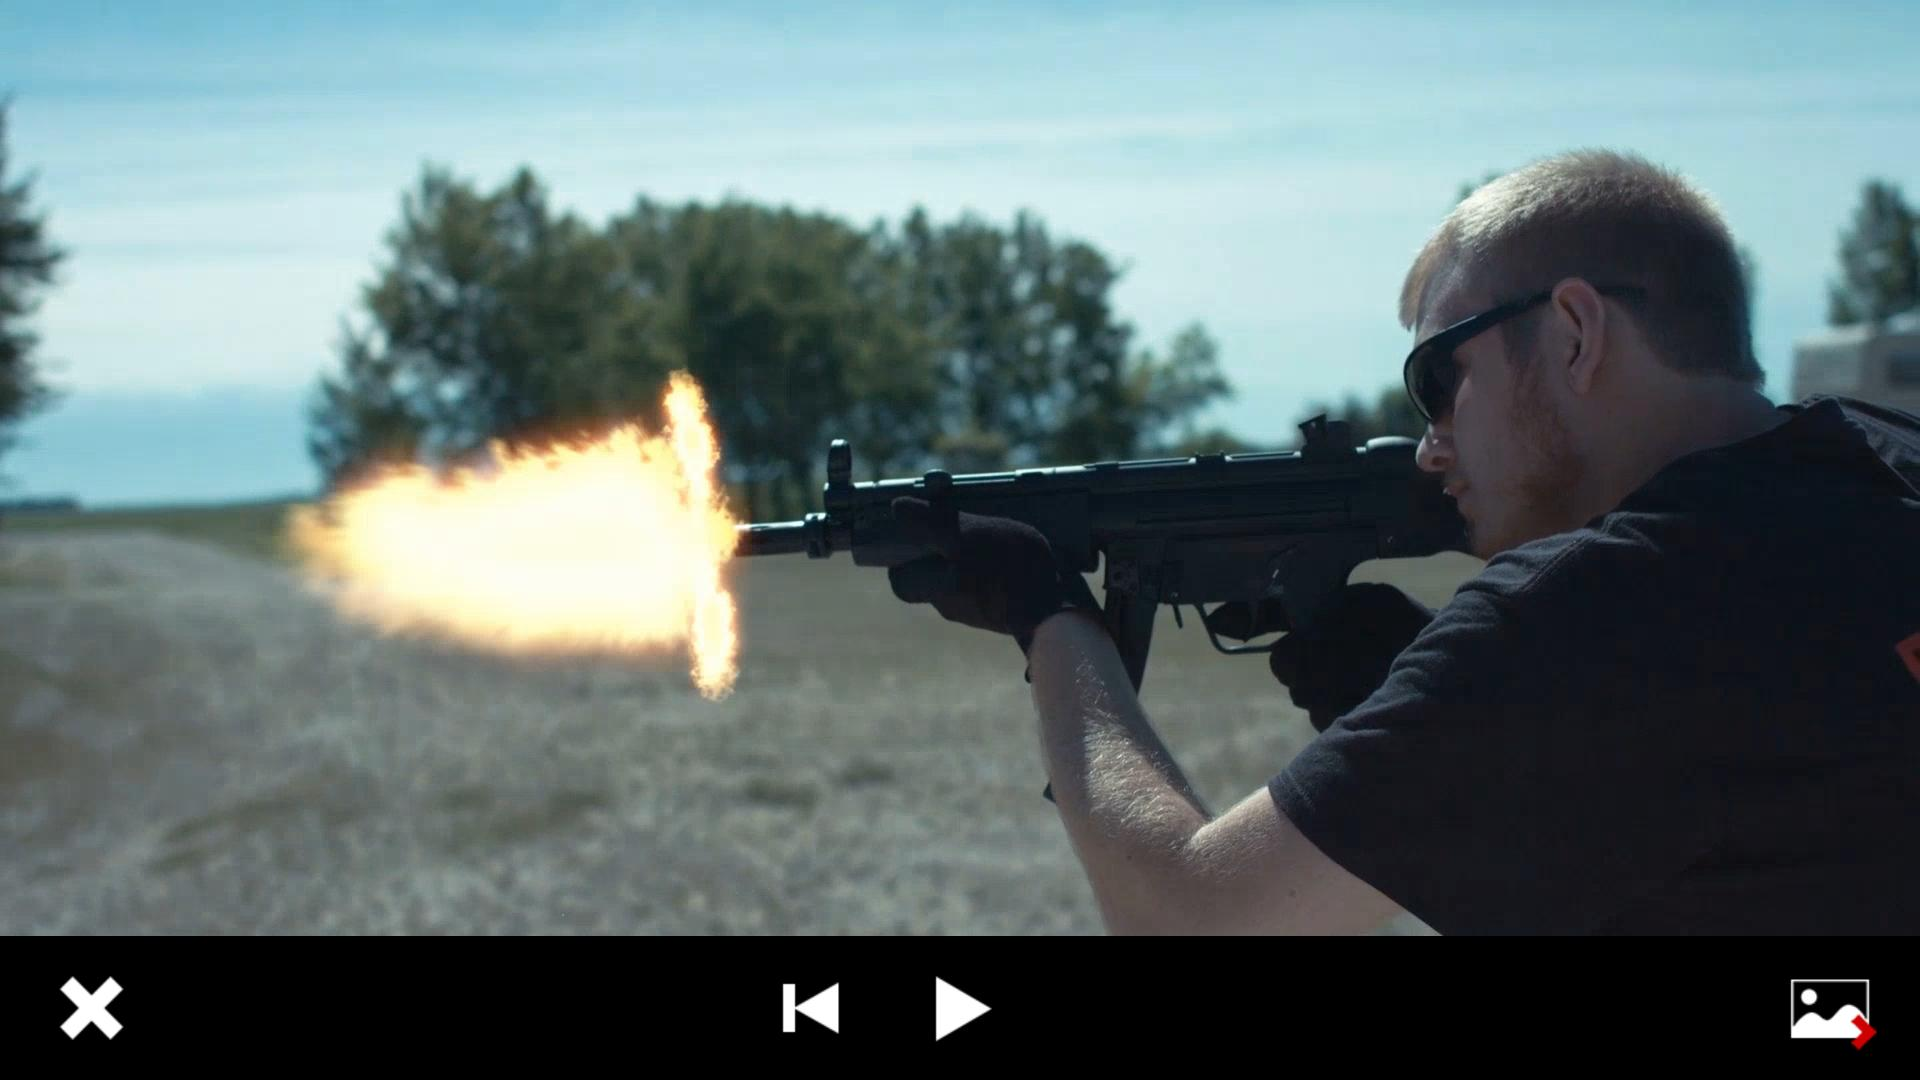 Gun Movie FX Free for Android - APK Download